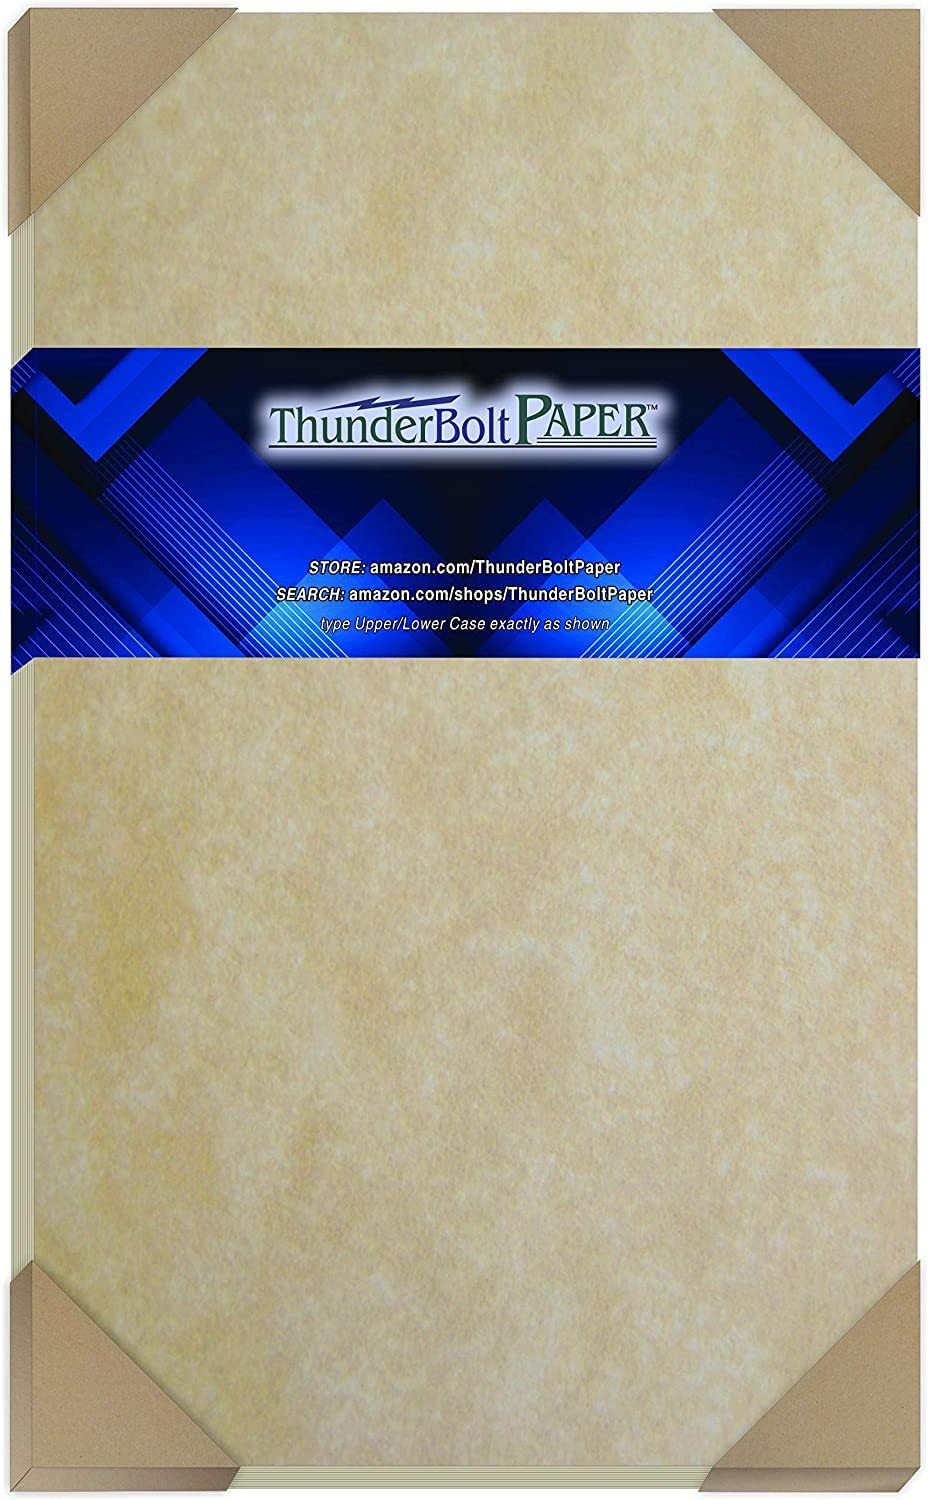 100 Old Age Parchment 65lb Cover Paper Sheets Cardstock Weight Colored Sheets 8.5X14 Inches Legal and Menu Size - Printable Parchment Semblance